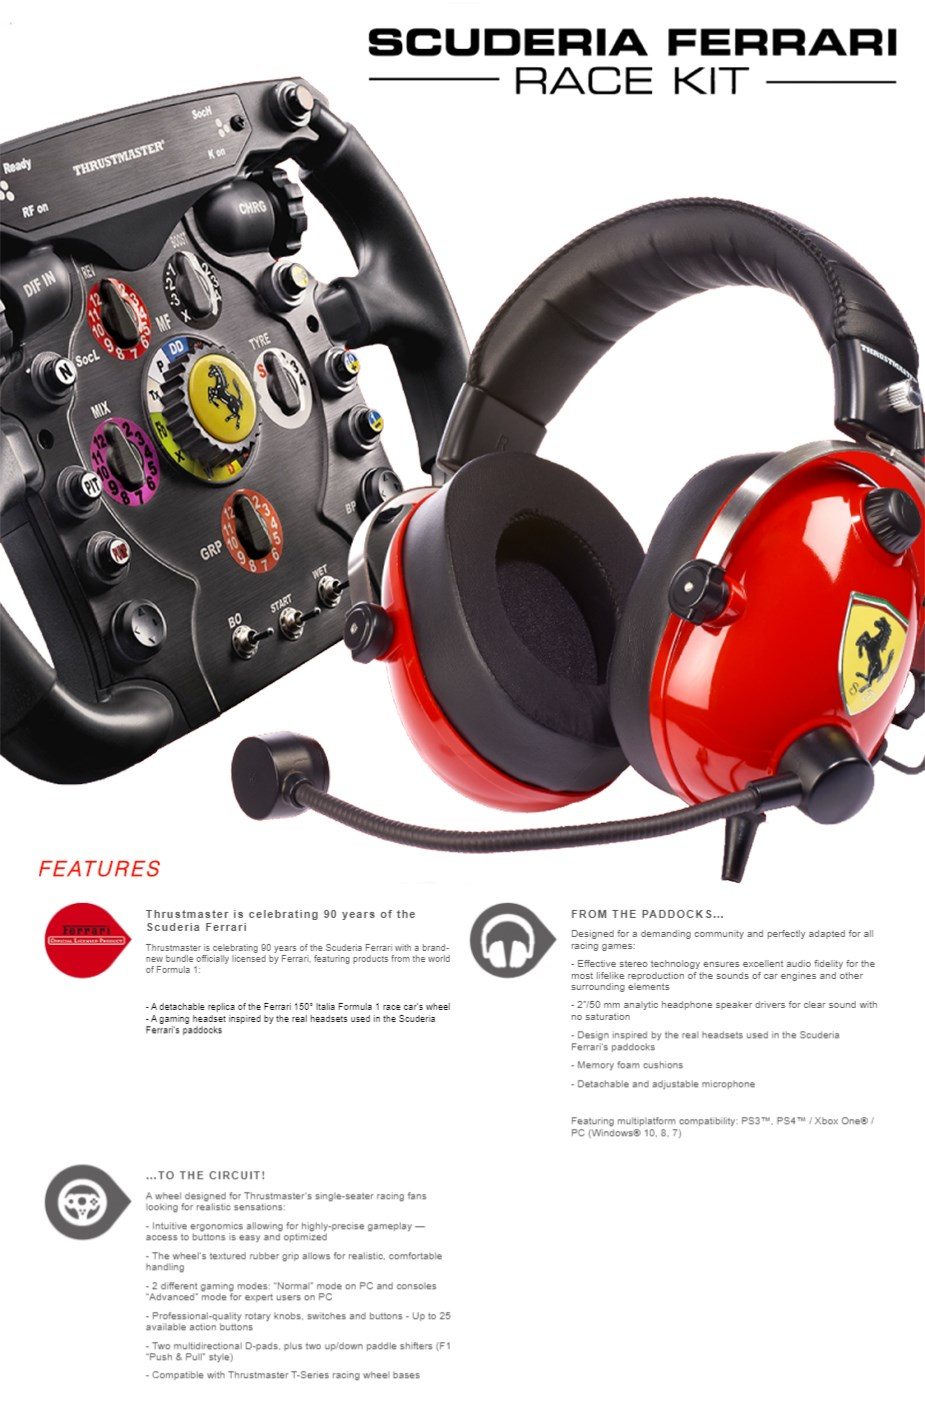 Thrustmaster Scuderia Ferrari Race Kit Add-On for PC/PS4/XB1 - Overview 1